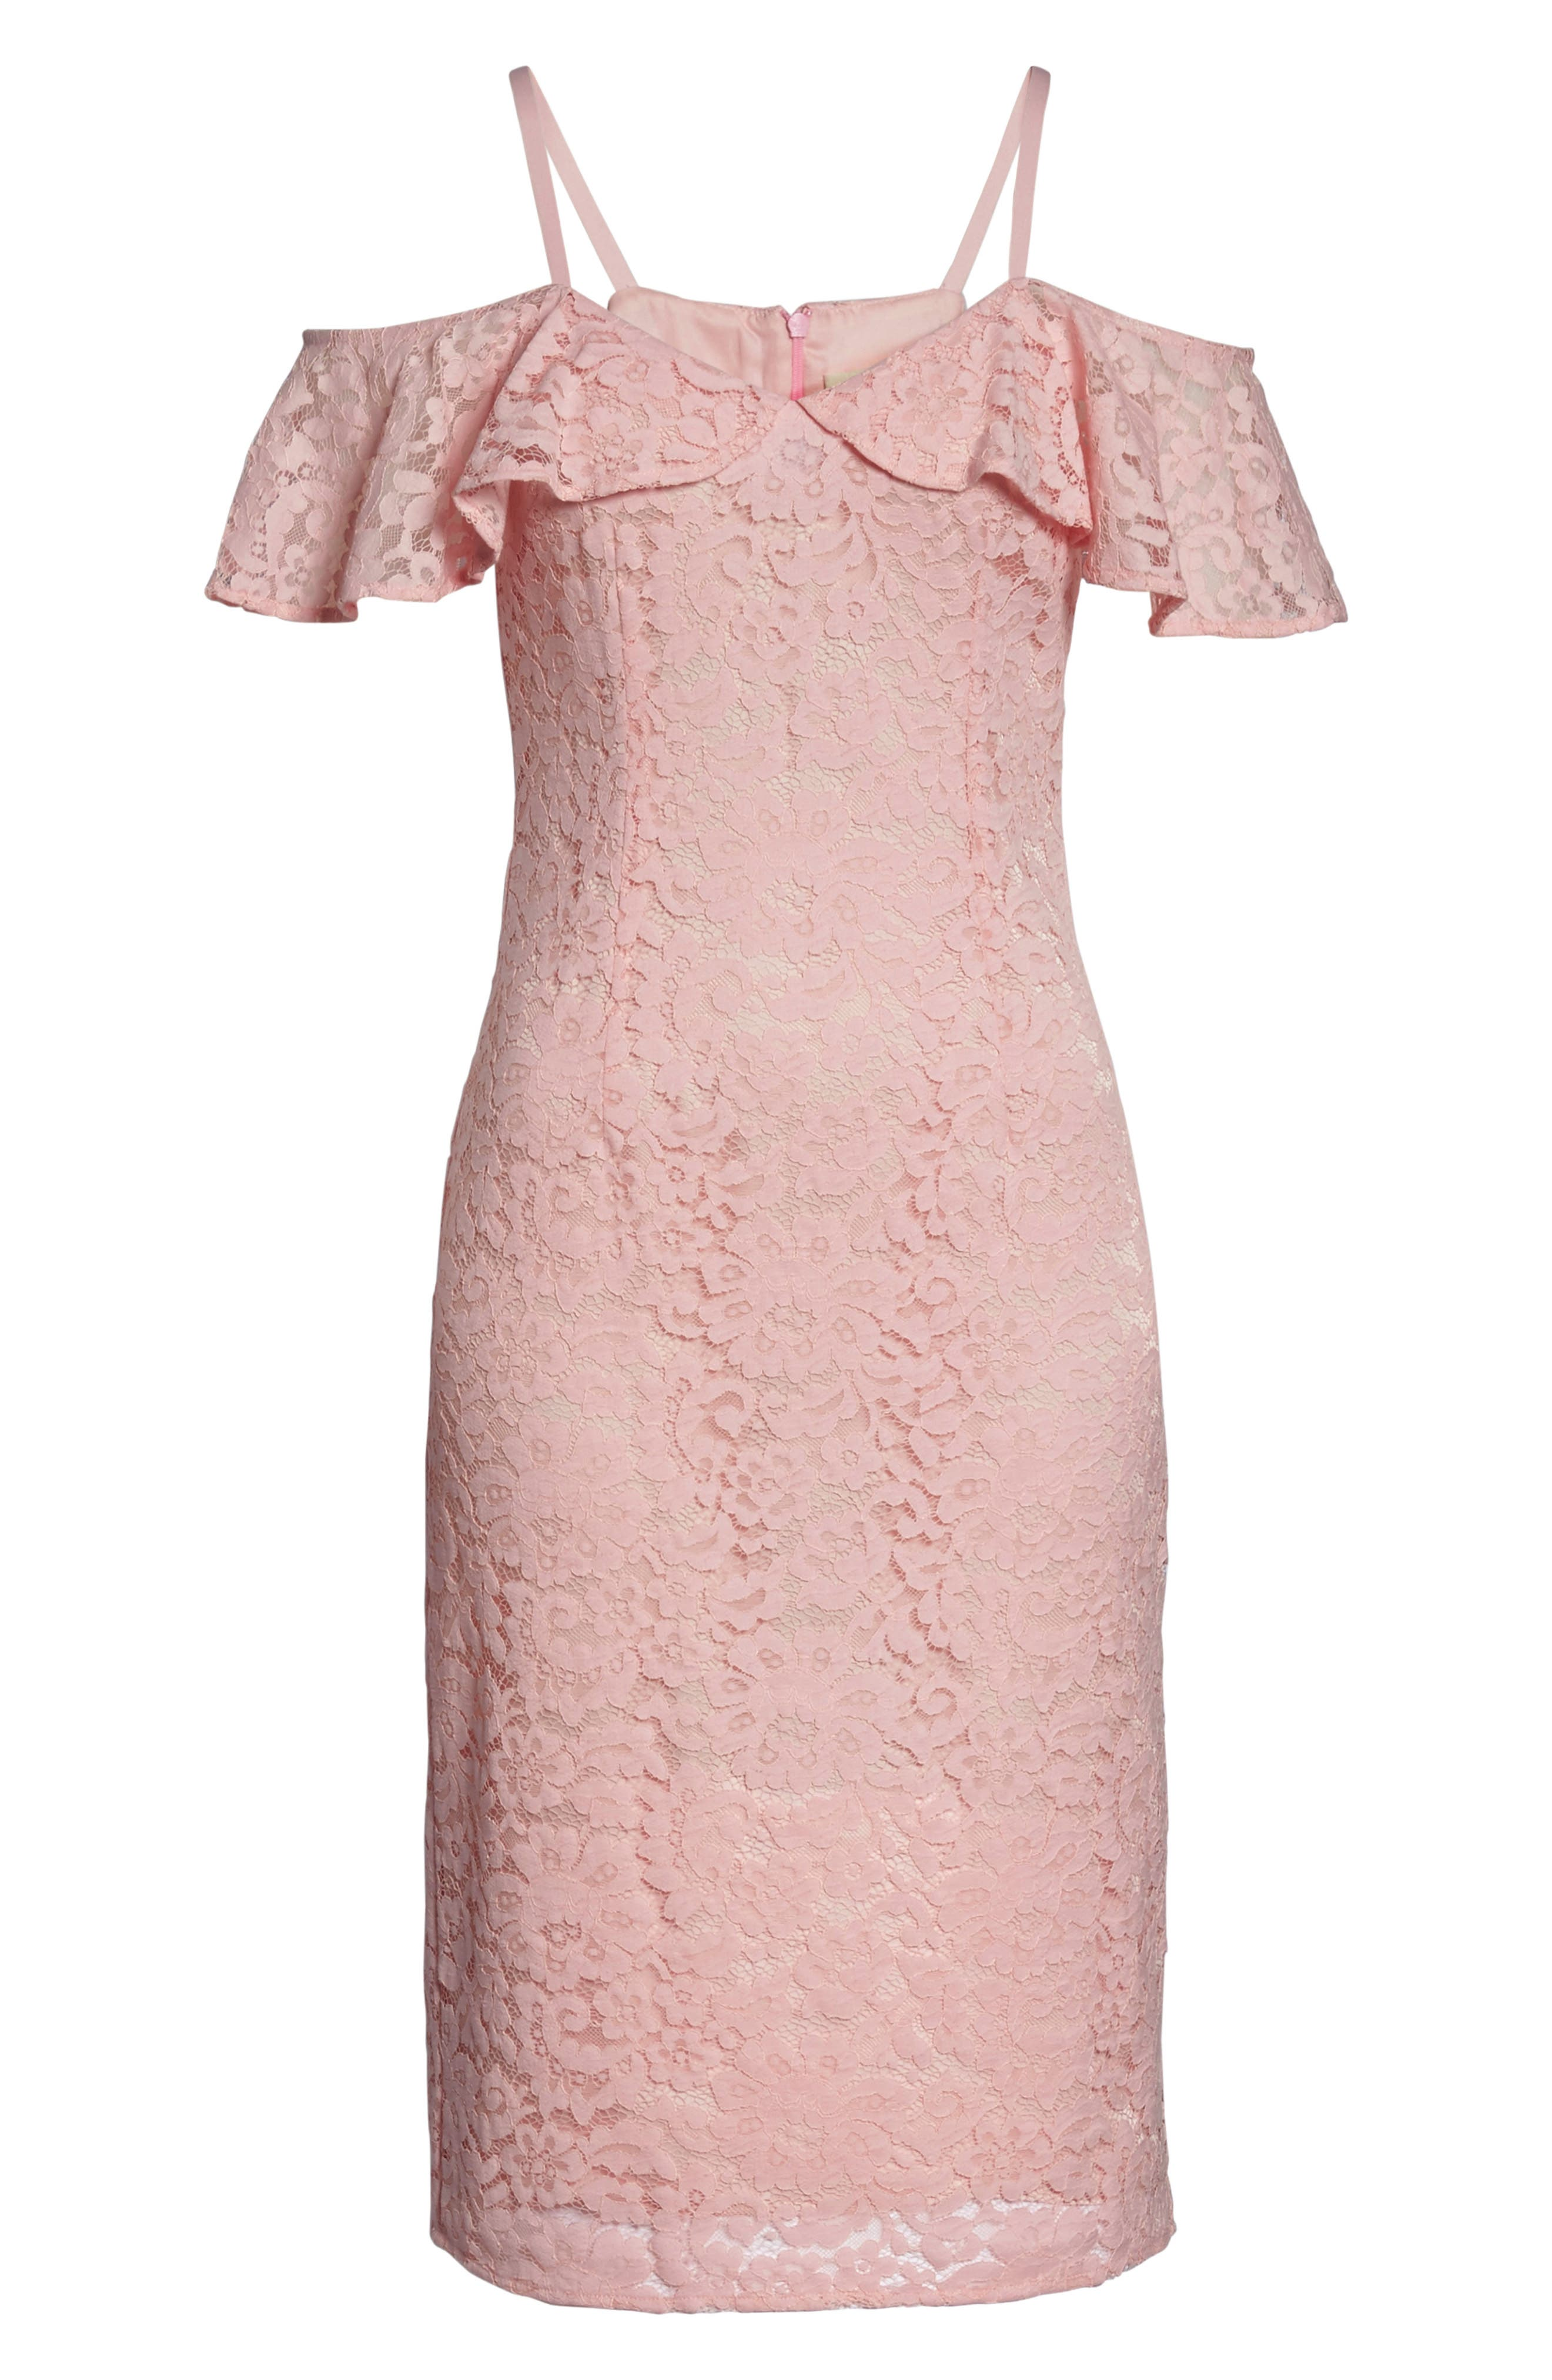 Mysterious Off the Shoulder Dress,                             Alternate thumbnail 6, color,                             Pink Champagne